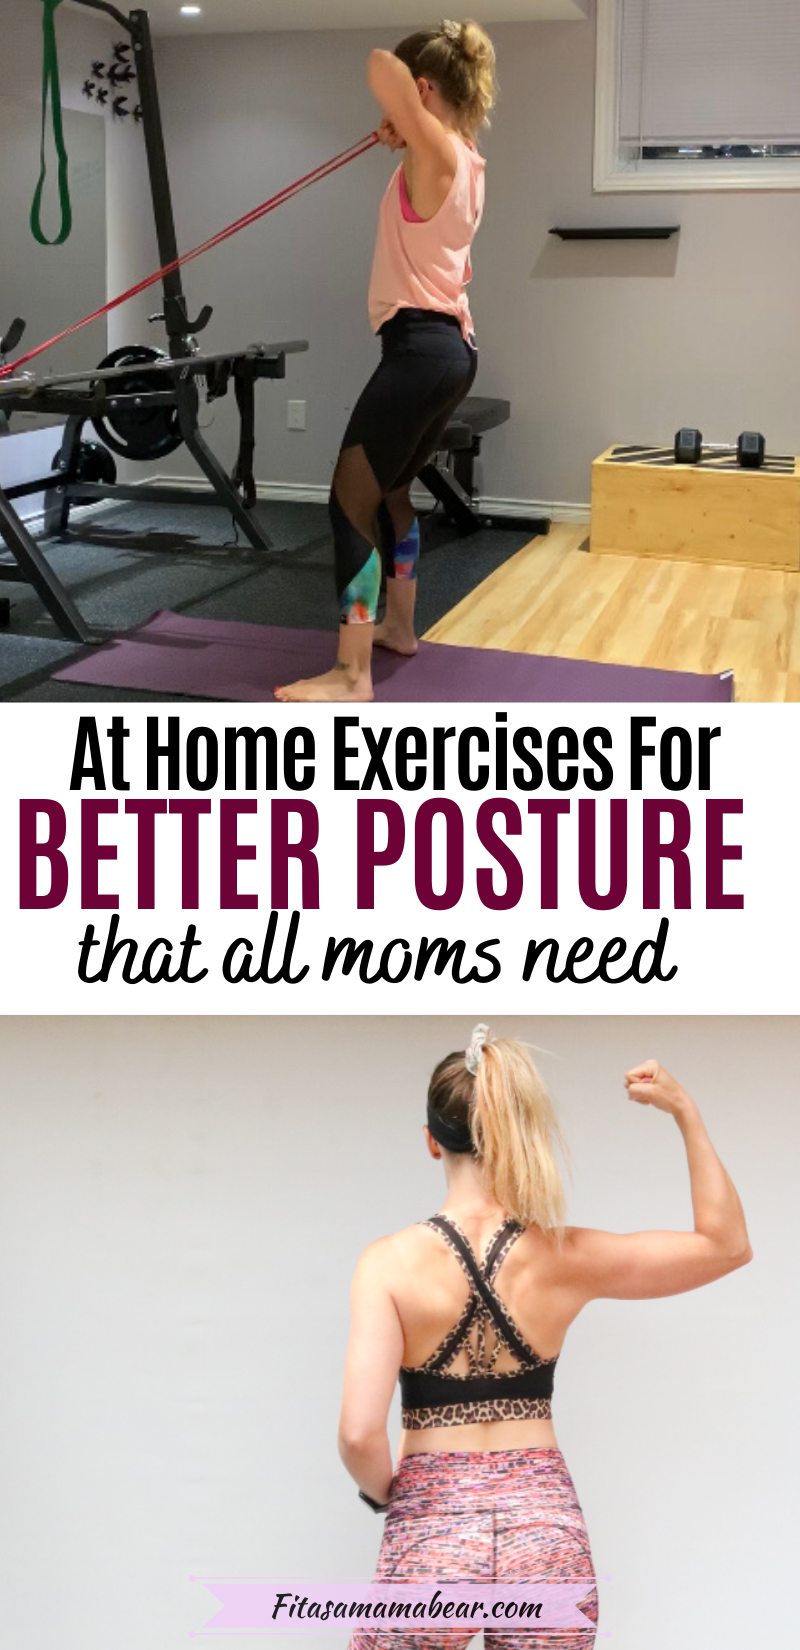 Pinterest image with text: two images, one of a womans back muscles in a sports bra and the other of a woman in an at-home gym performing posterior chain exercises.